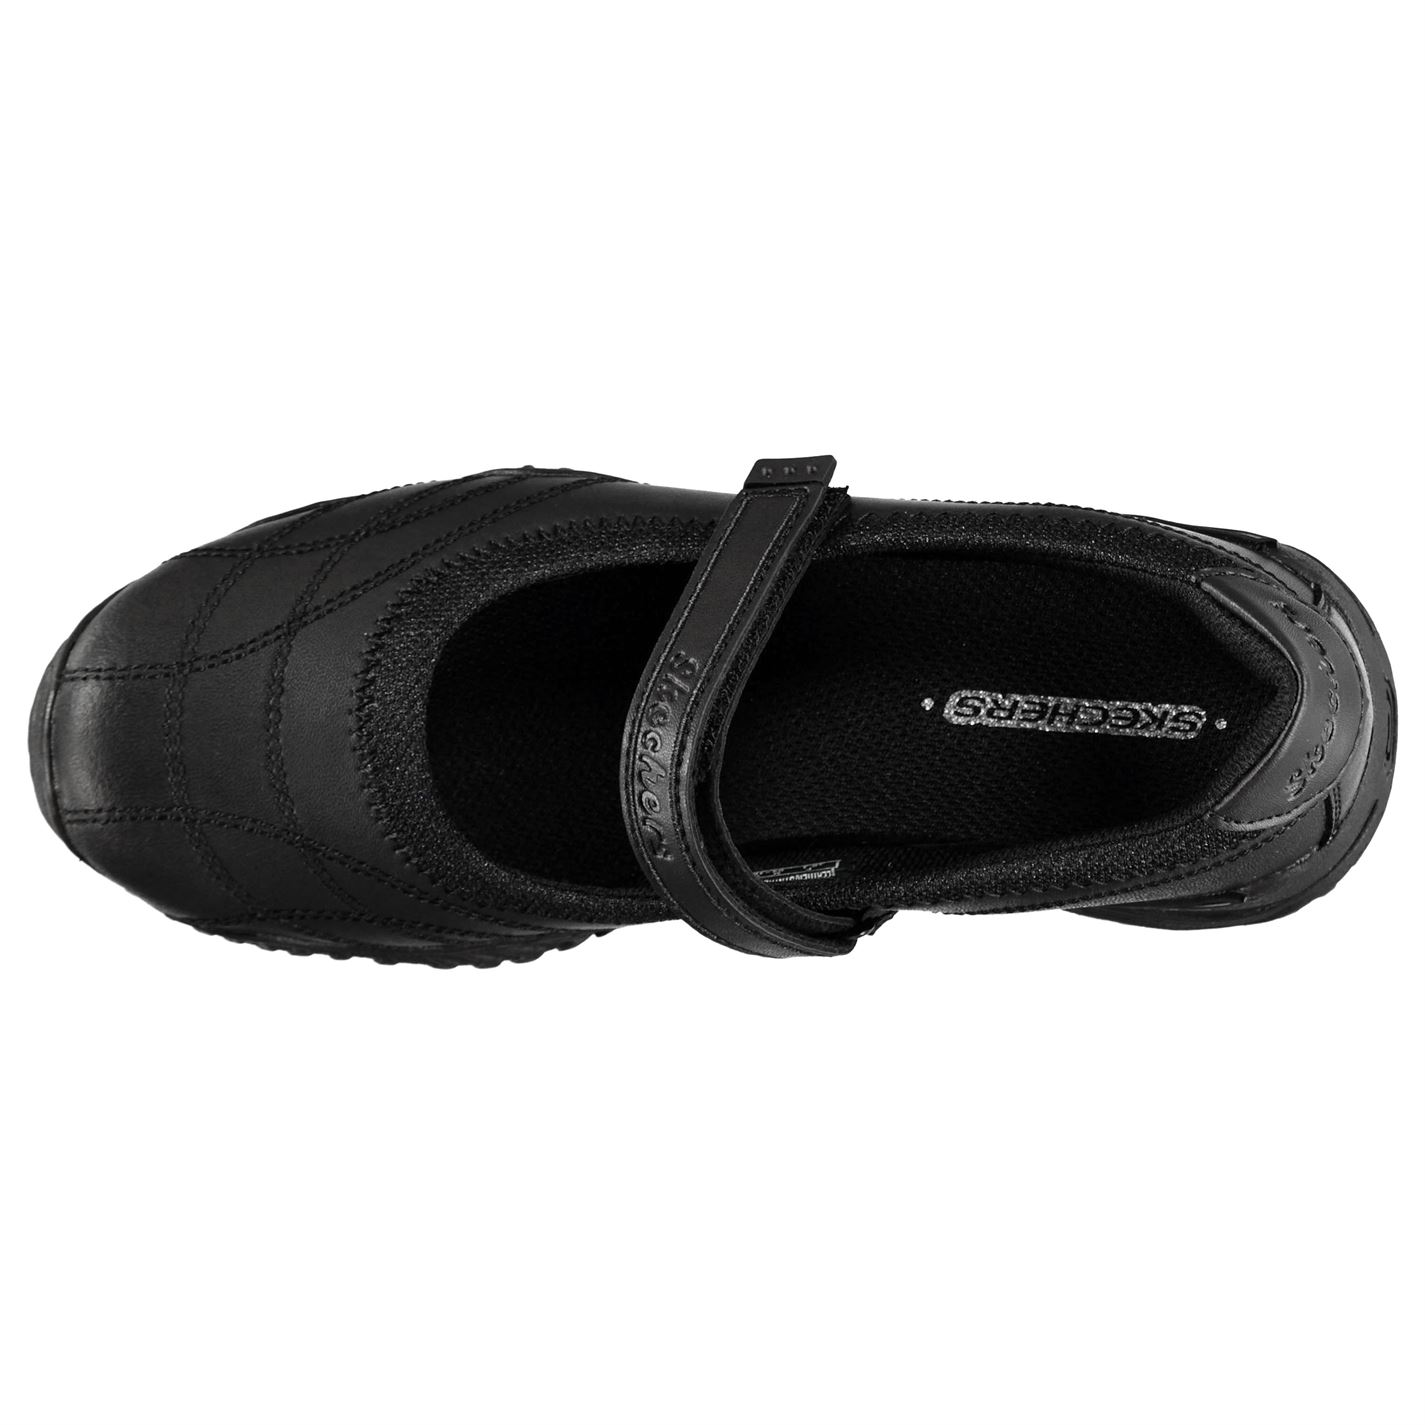 School Mary Strap Janes Forefoot Jane Black Youngster Girls Lightweight Zapatos Skechers 5RqEfyB